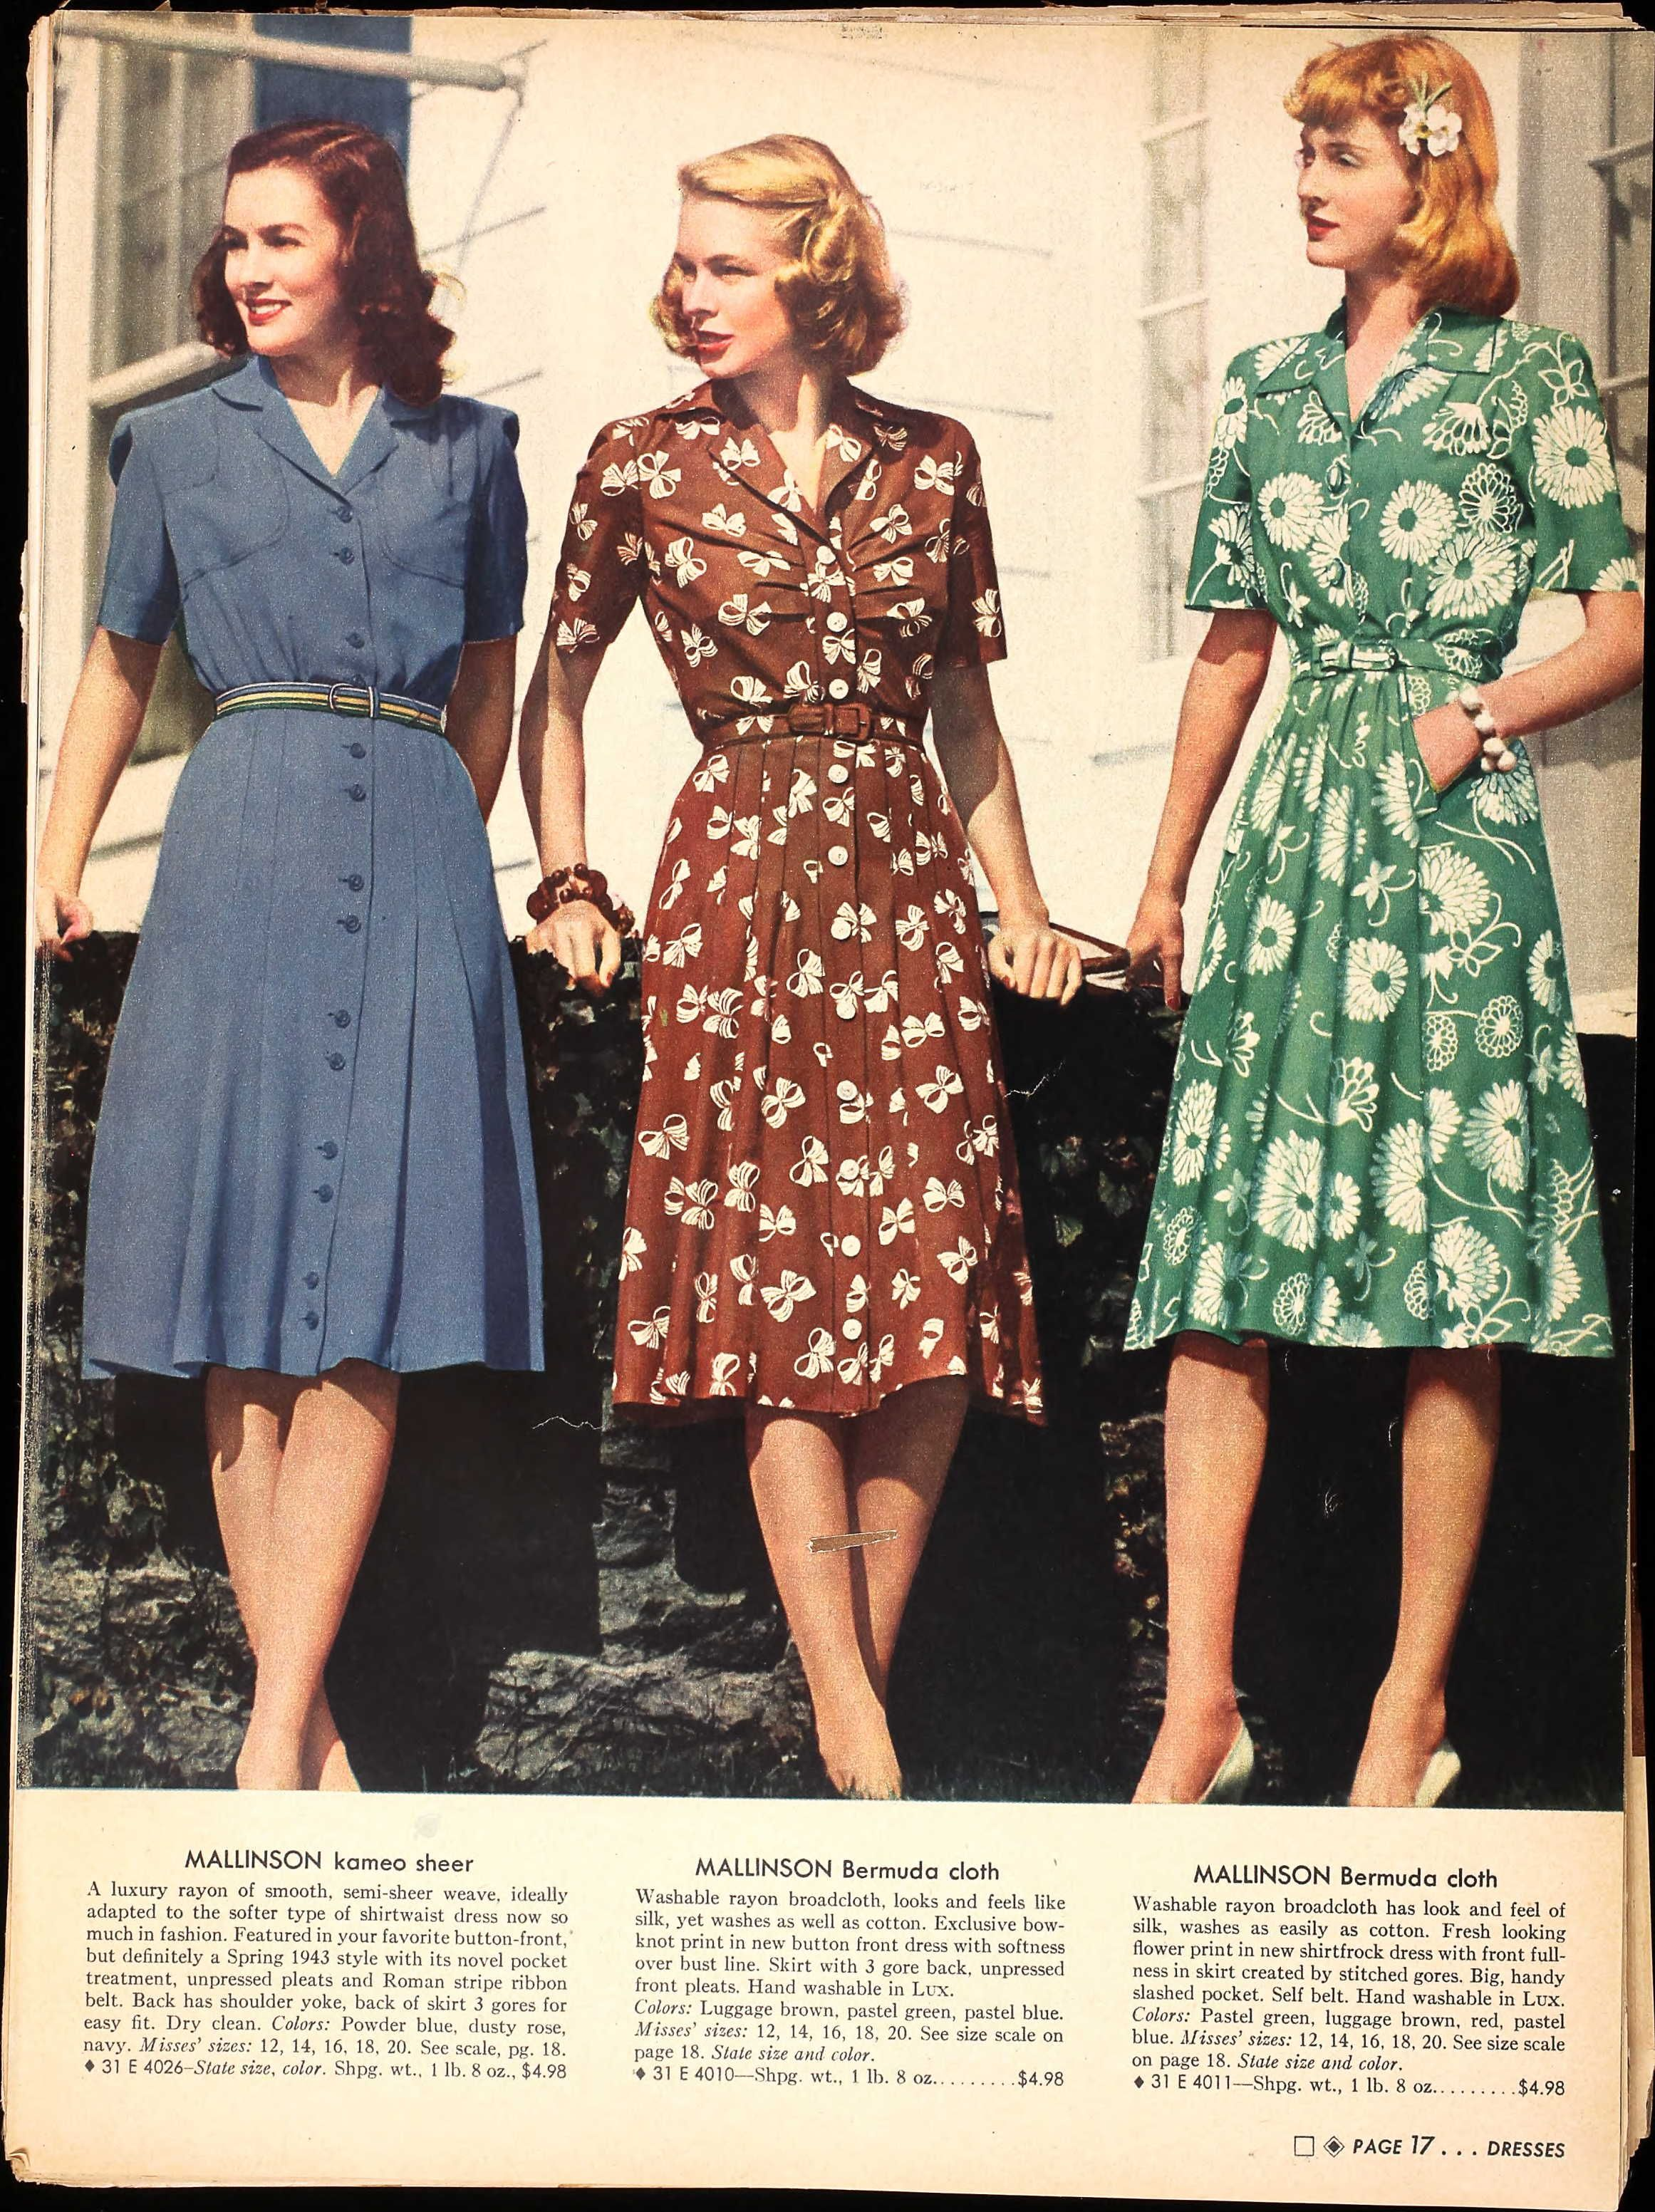 U S Sears Catalog 1943 Vintage Fashion Day Dress 40s Green Brown Blue Floral Rayon Color Photo